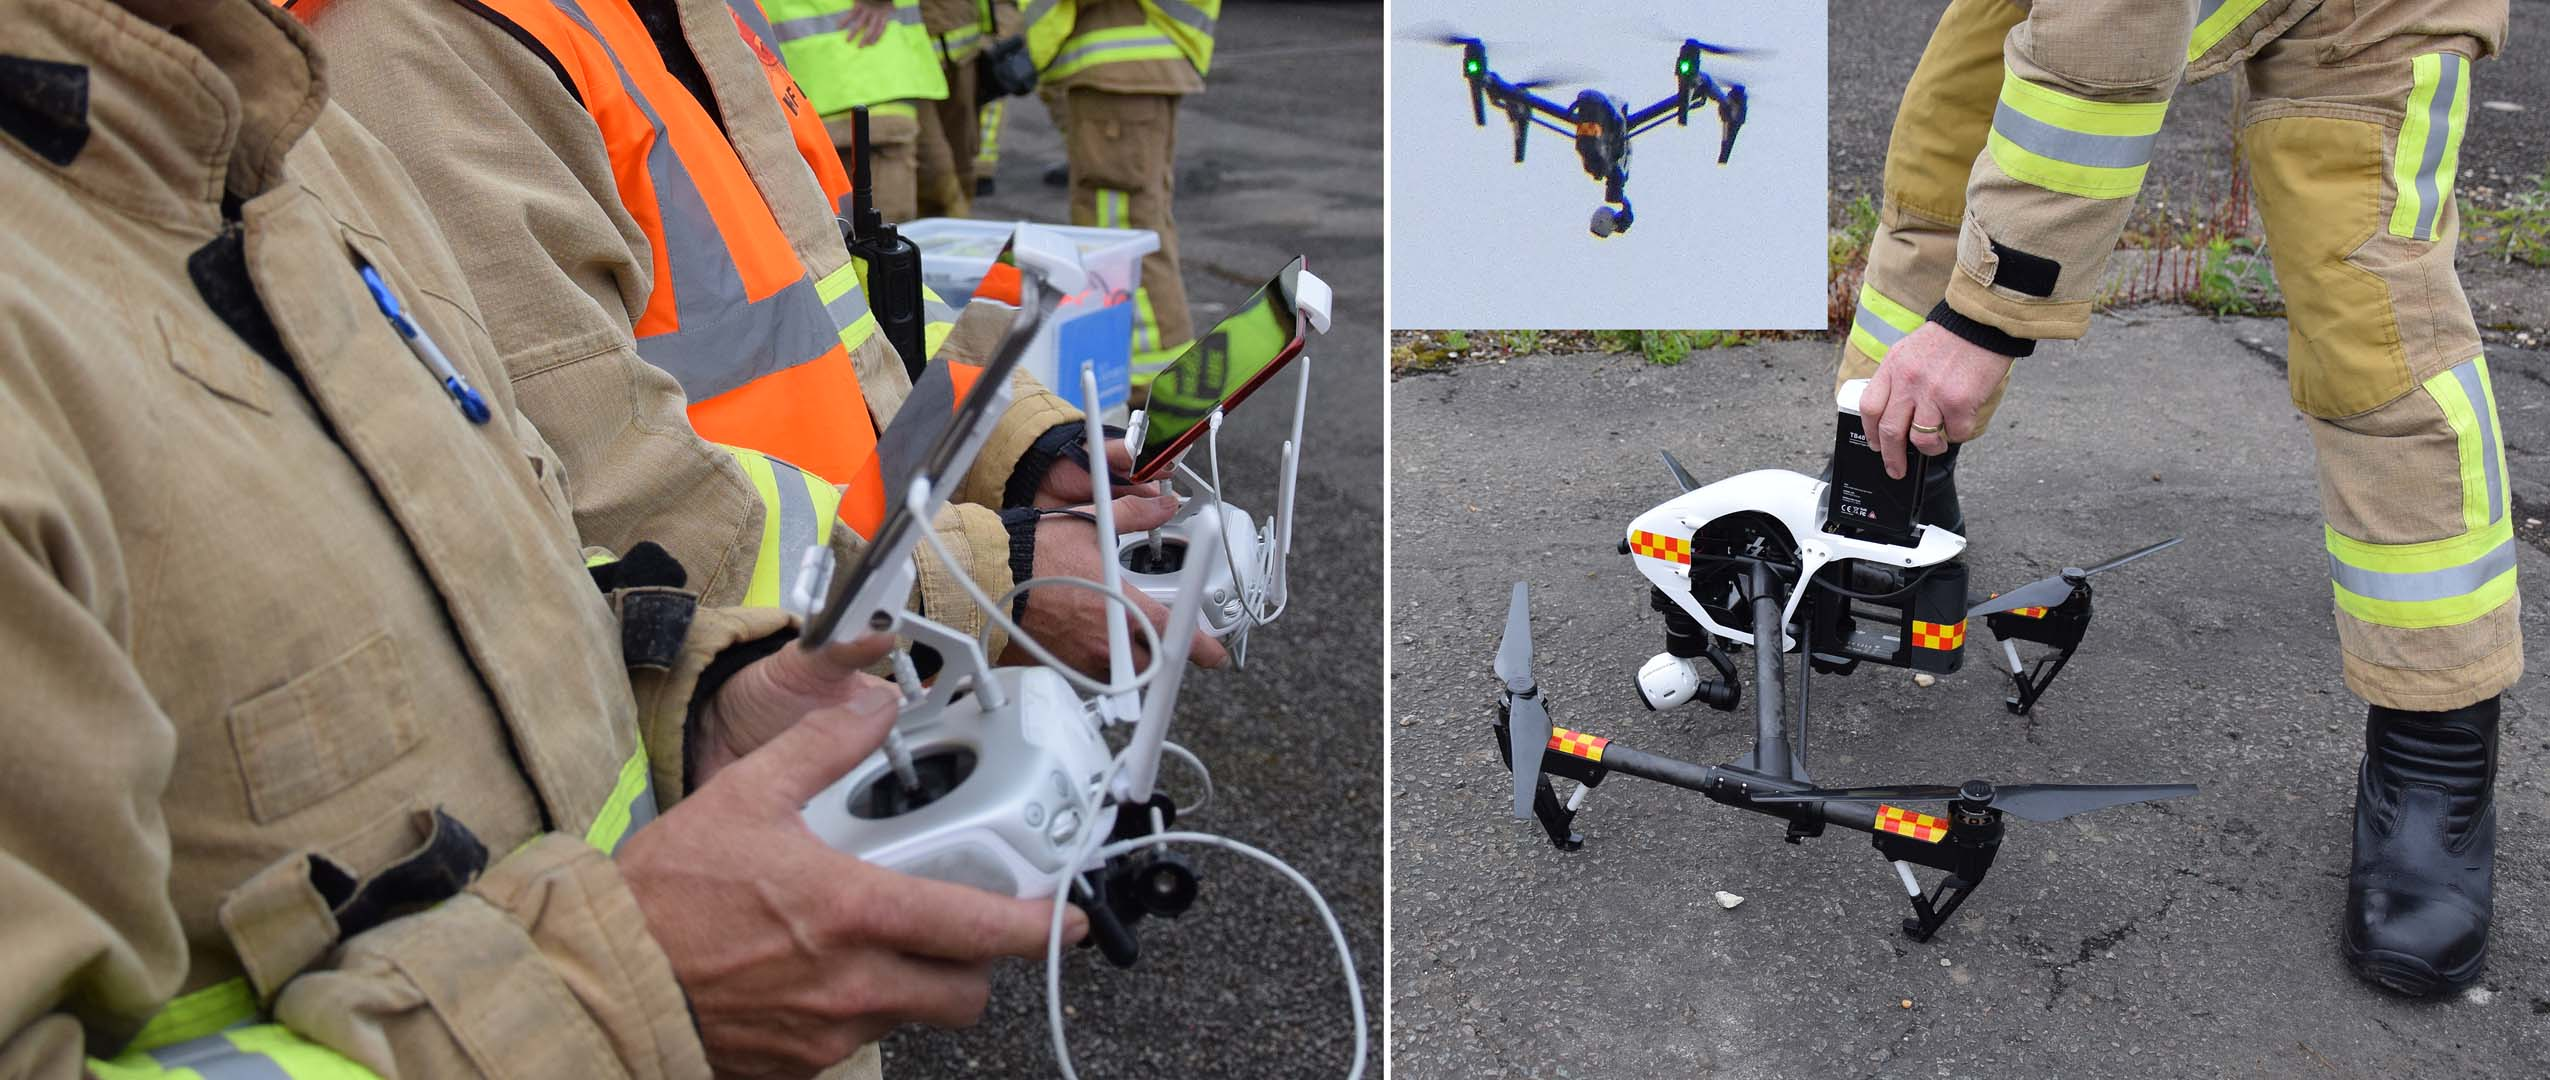 Herts Fire Crew using Drones latest technology to Aid Emergency Services